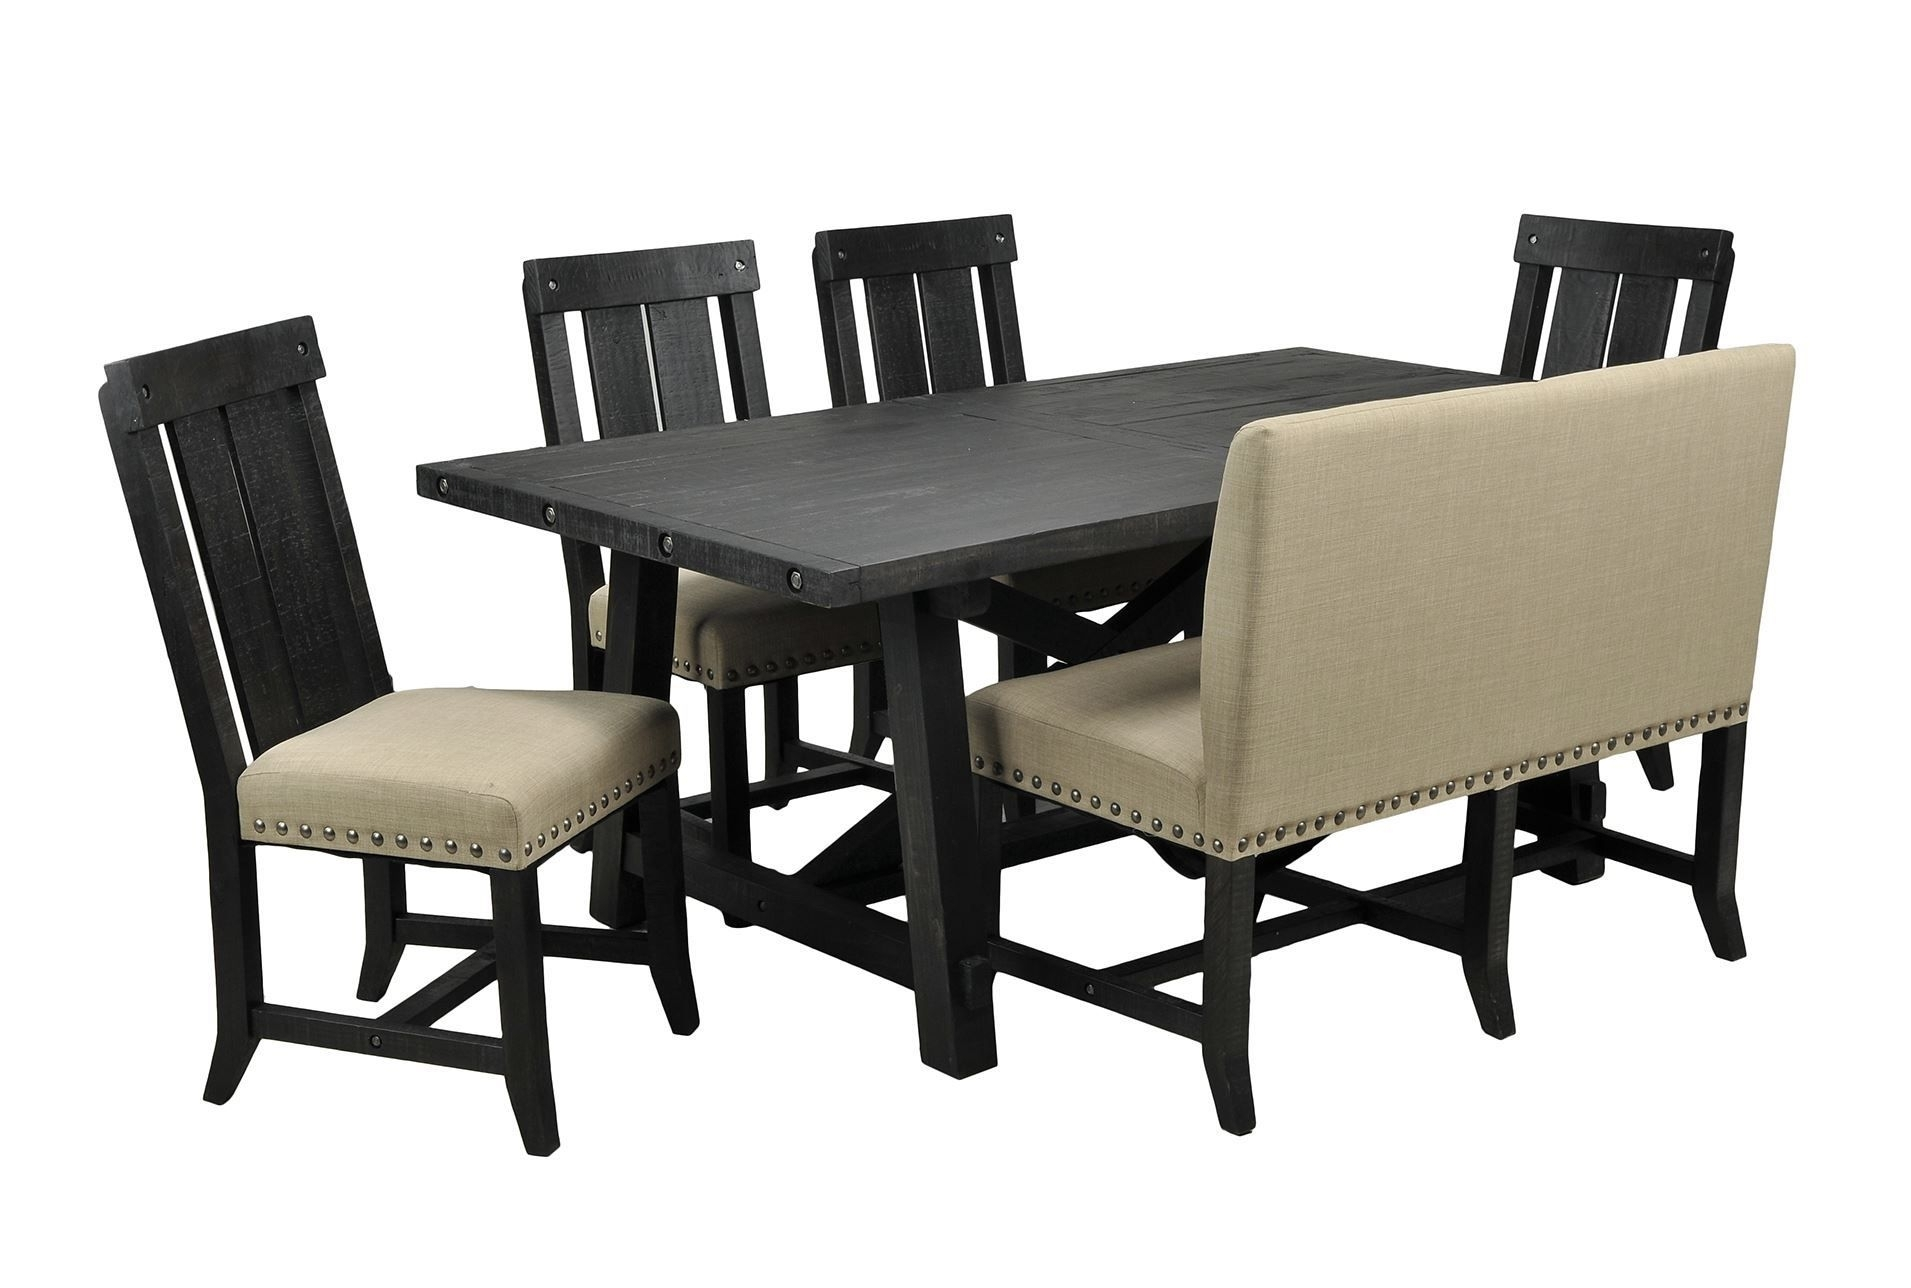 Jaxon 6 Piece Rectangle Dining Set W/bench & Wood Chairs, Café For Most Popular Jaxon 6 Piece Rectangle Dining Sets With Bench & Wood Chairs (Image 12 of 20)